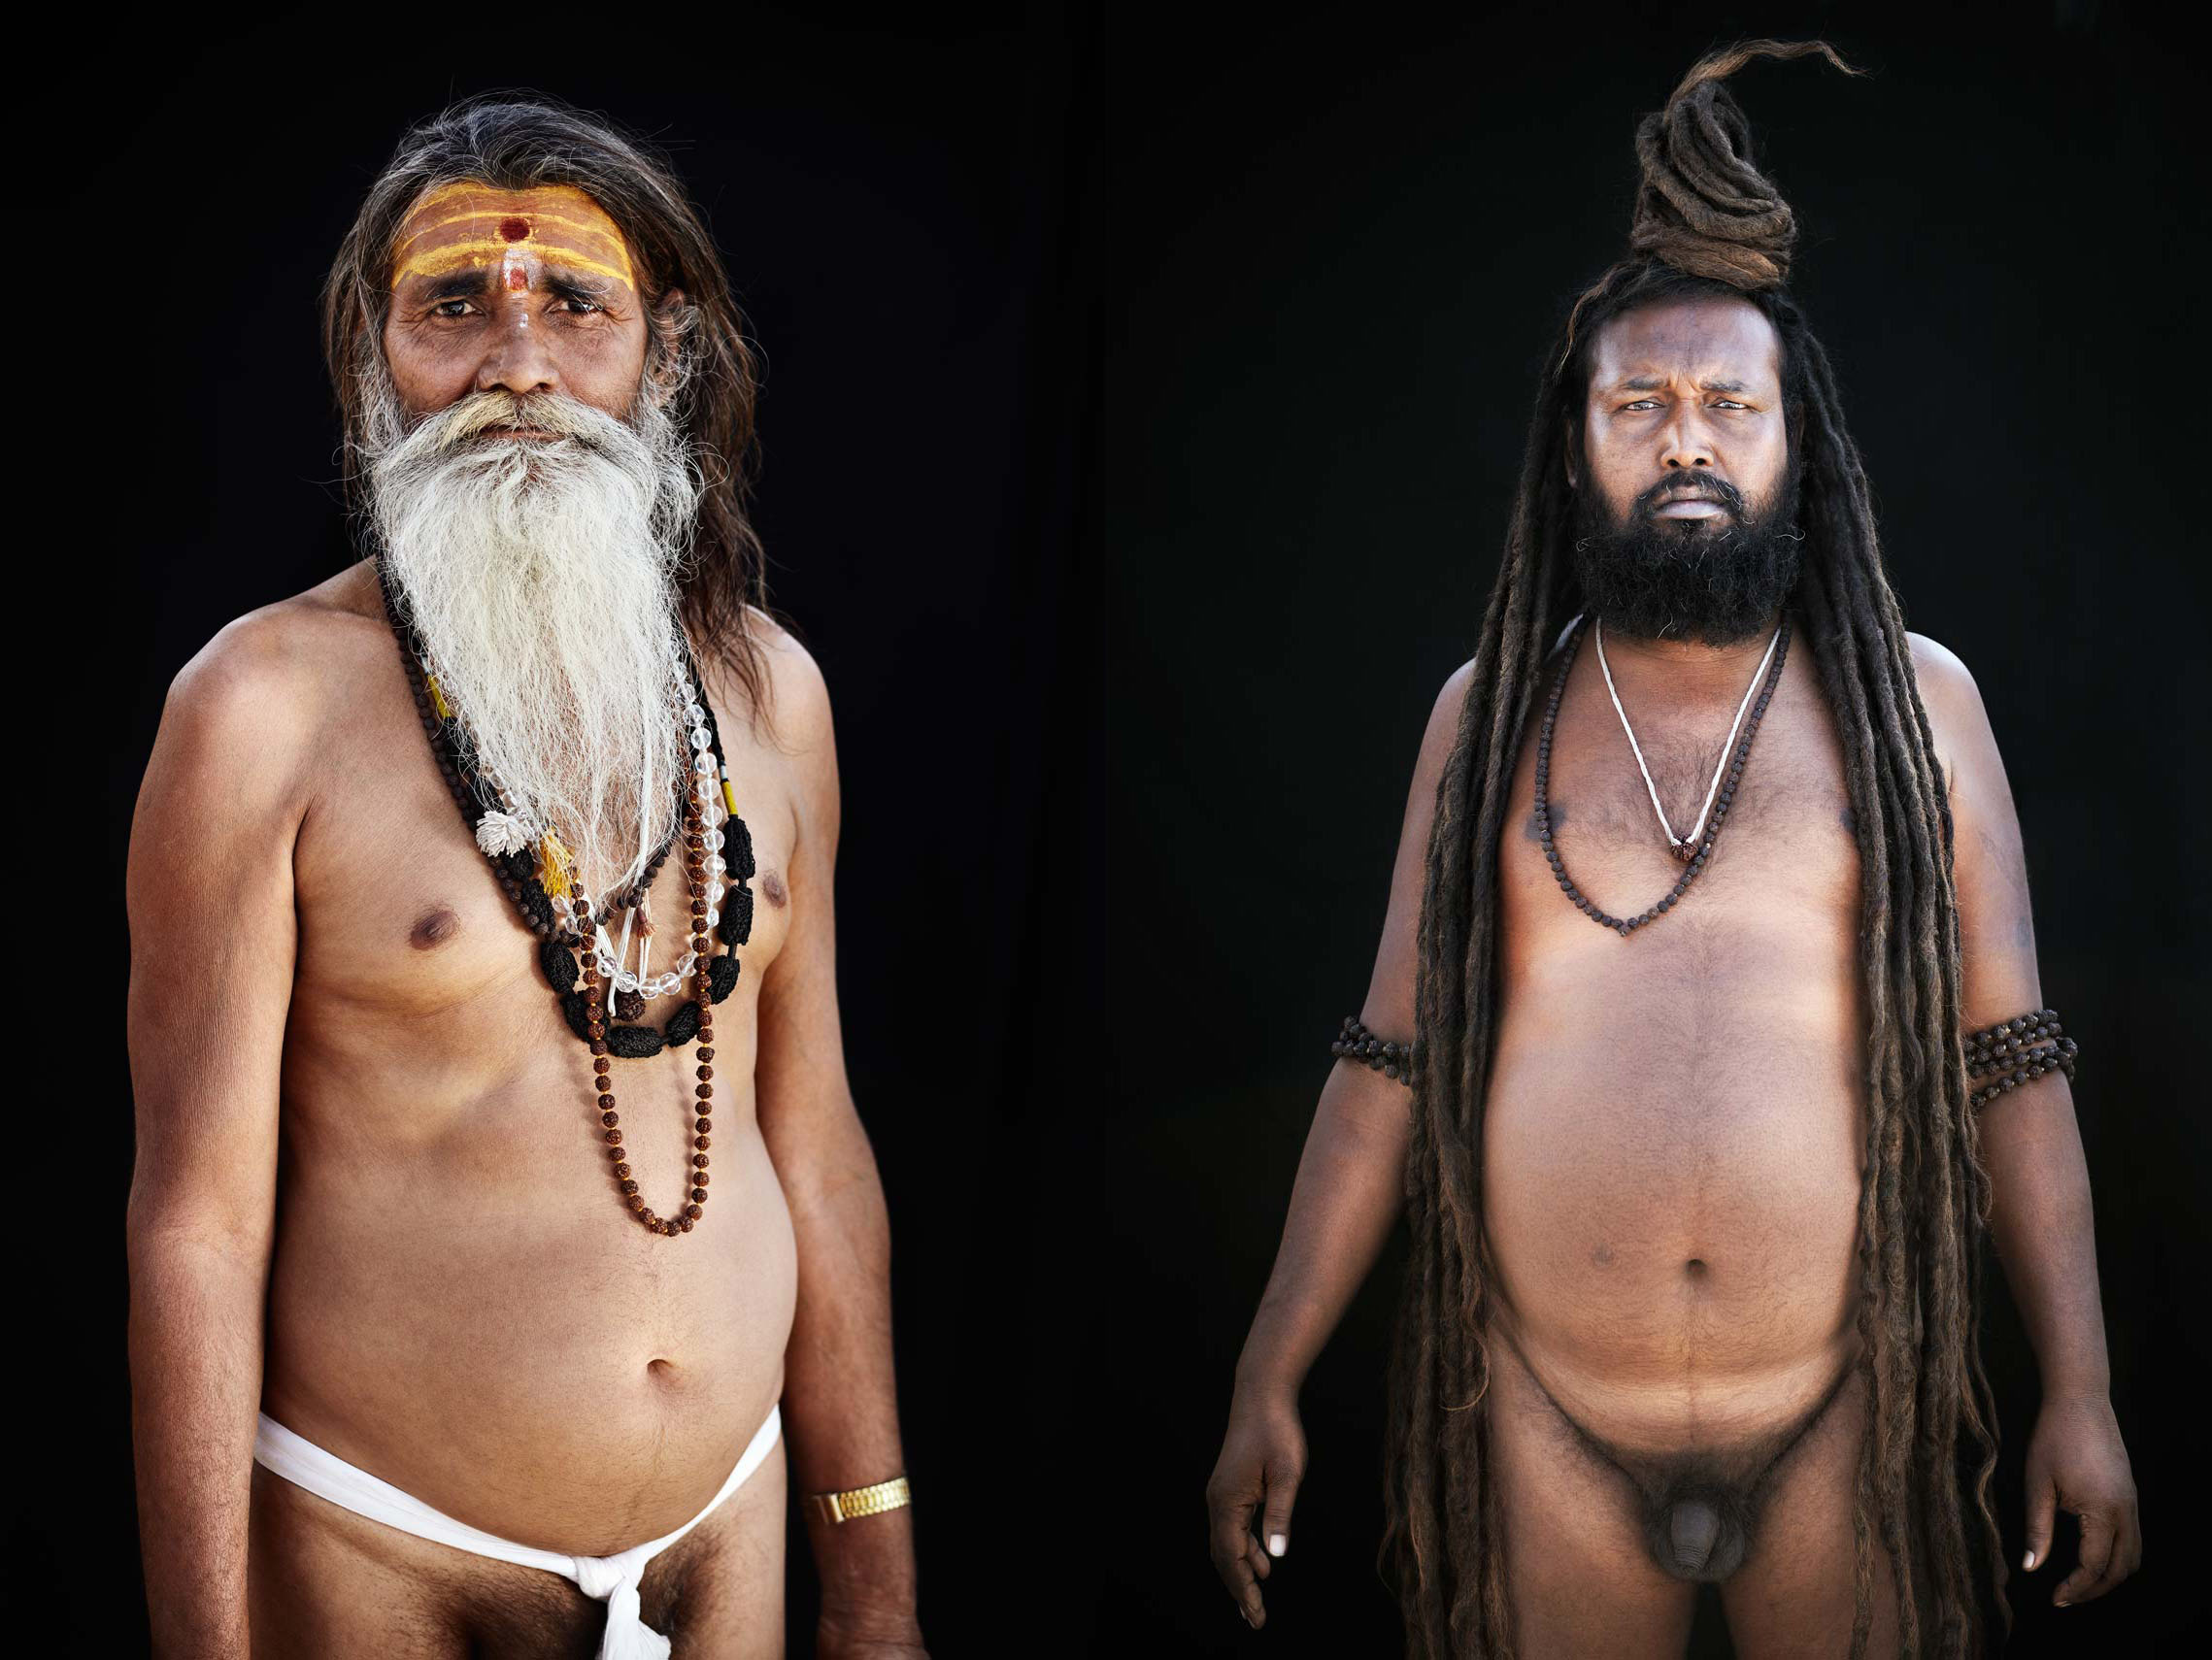 Naked Saddhu, India